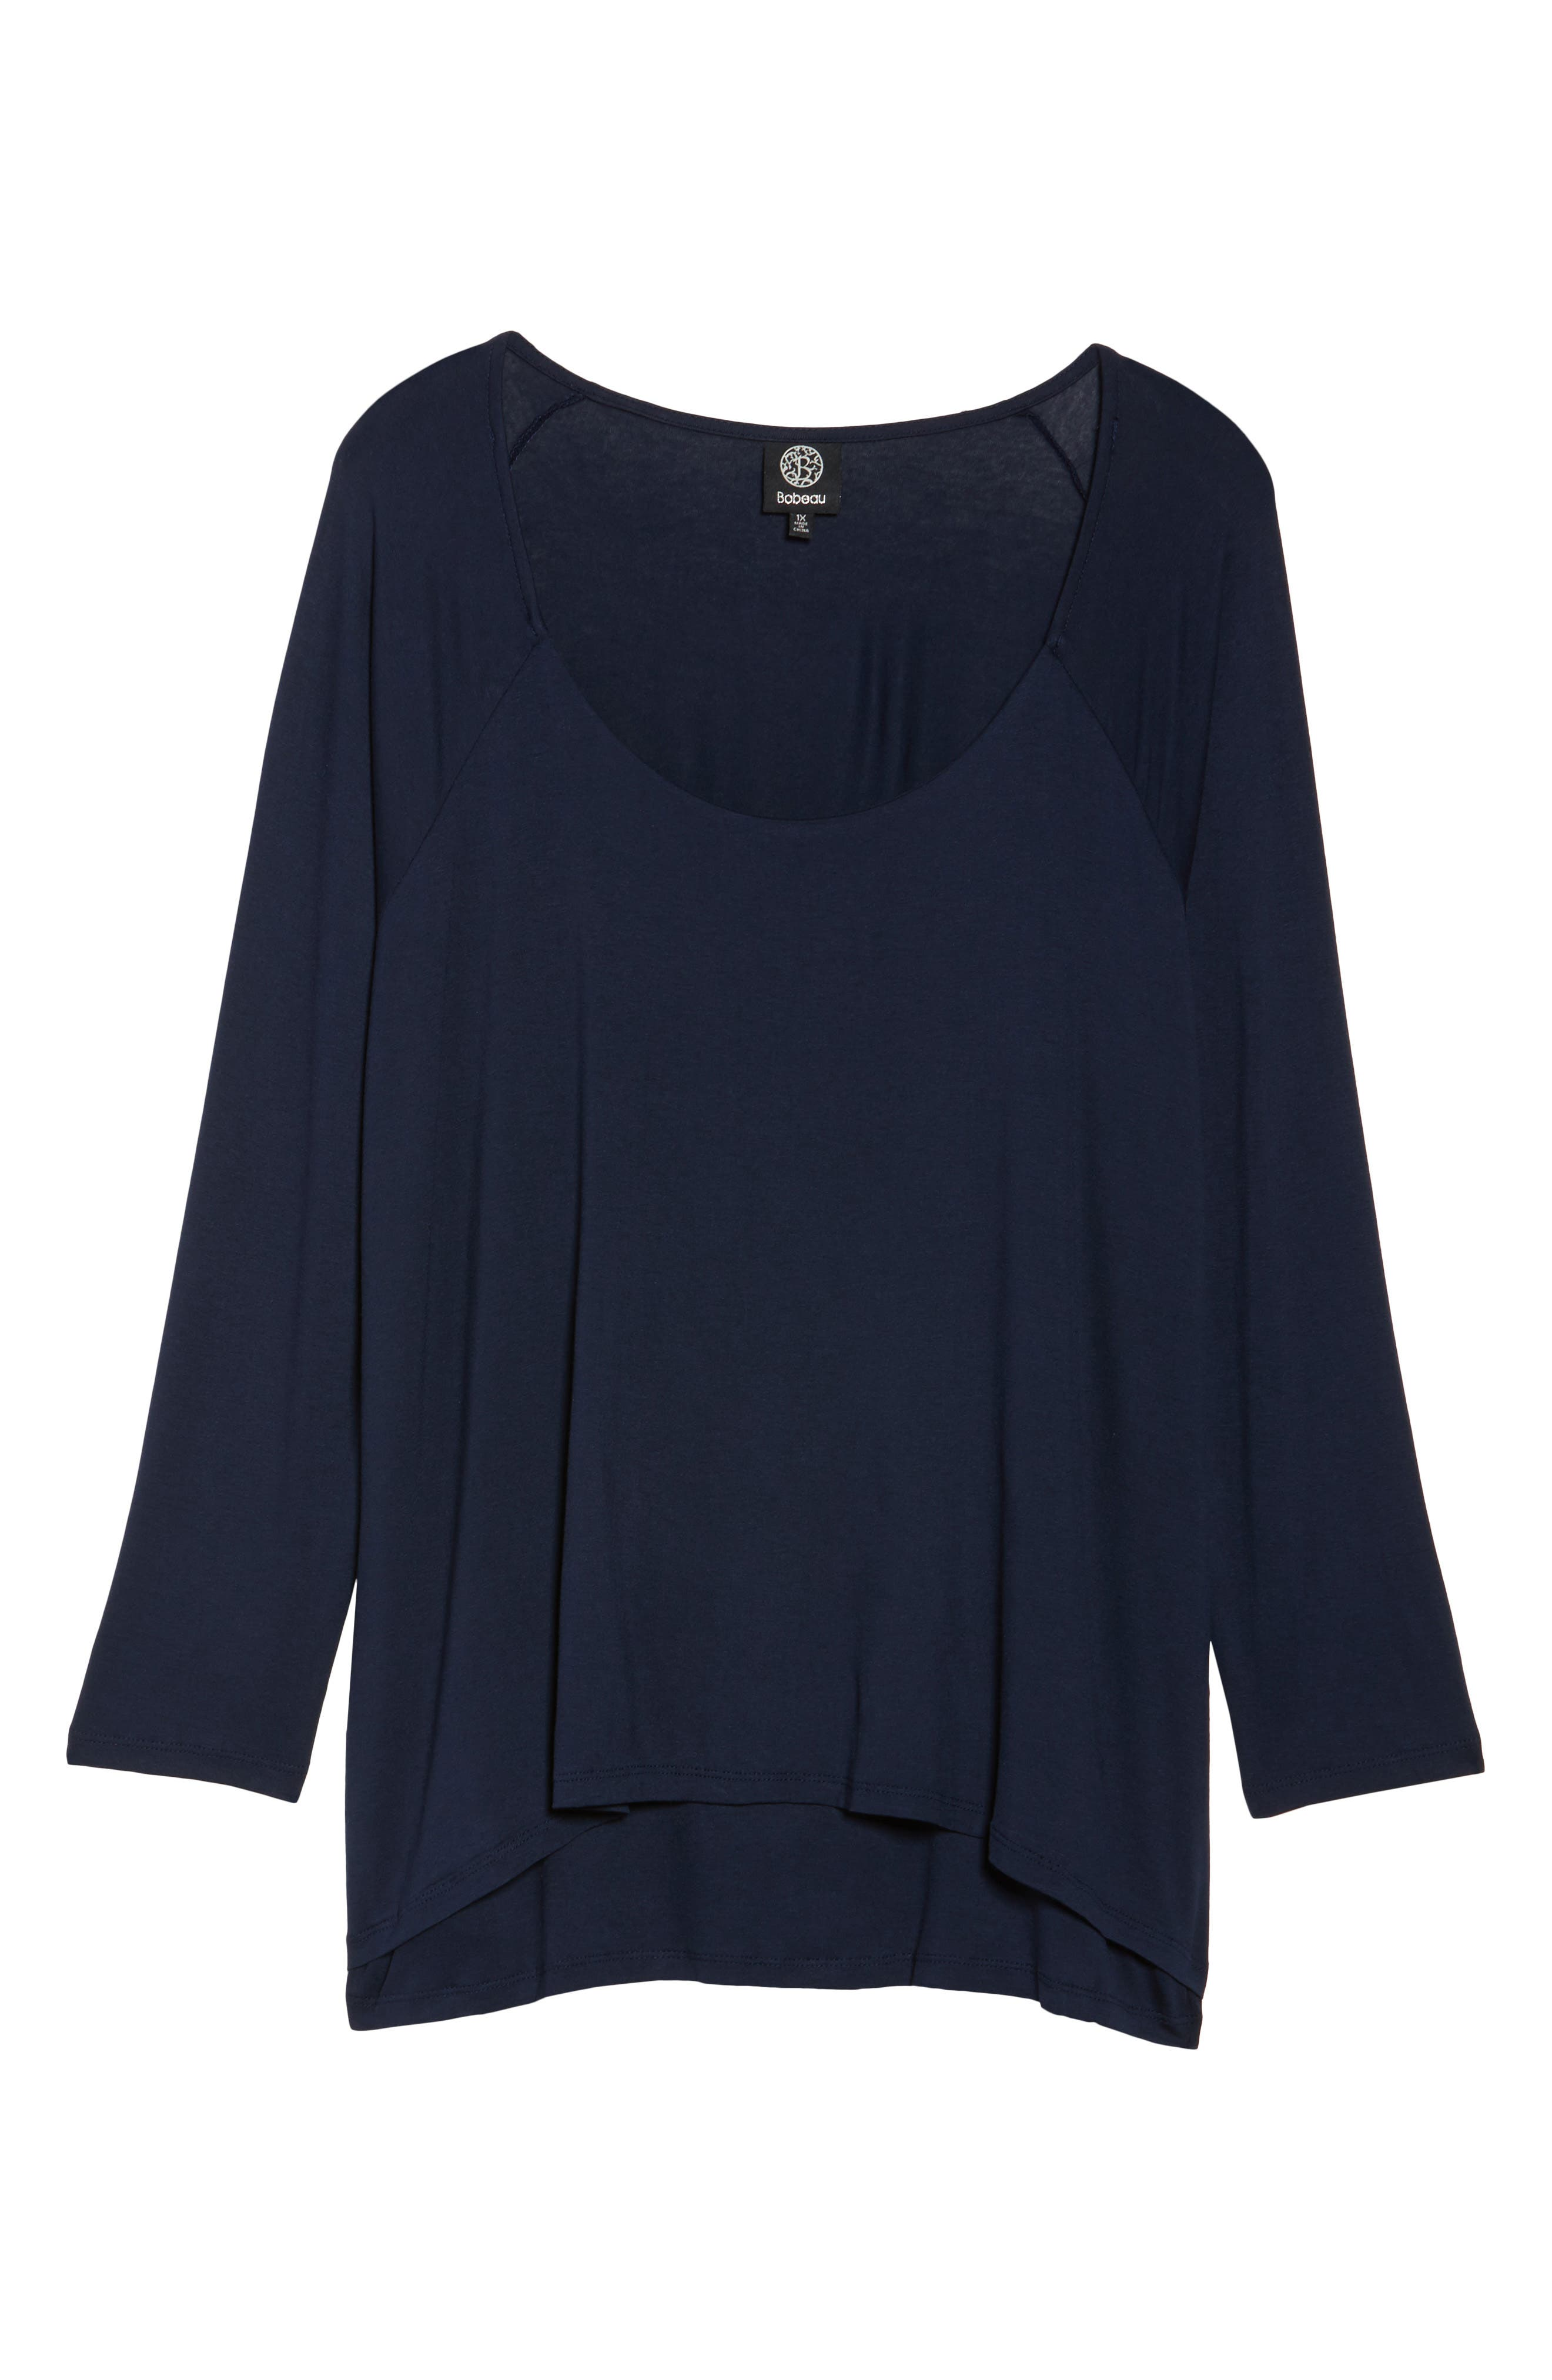 Layered Knit Top,                             Alternate thumbnail 6, color,                             411